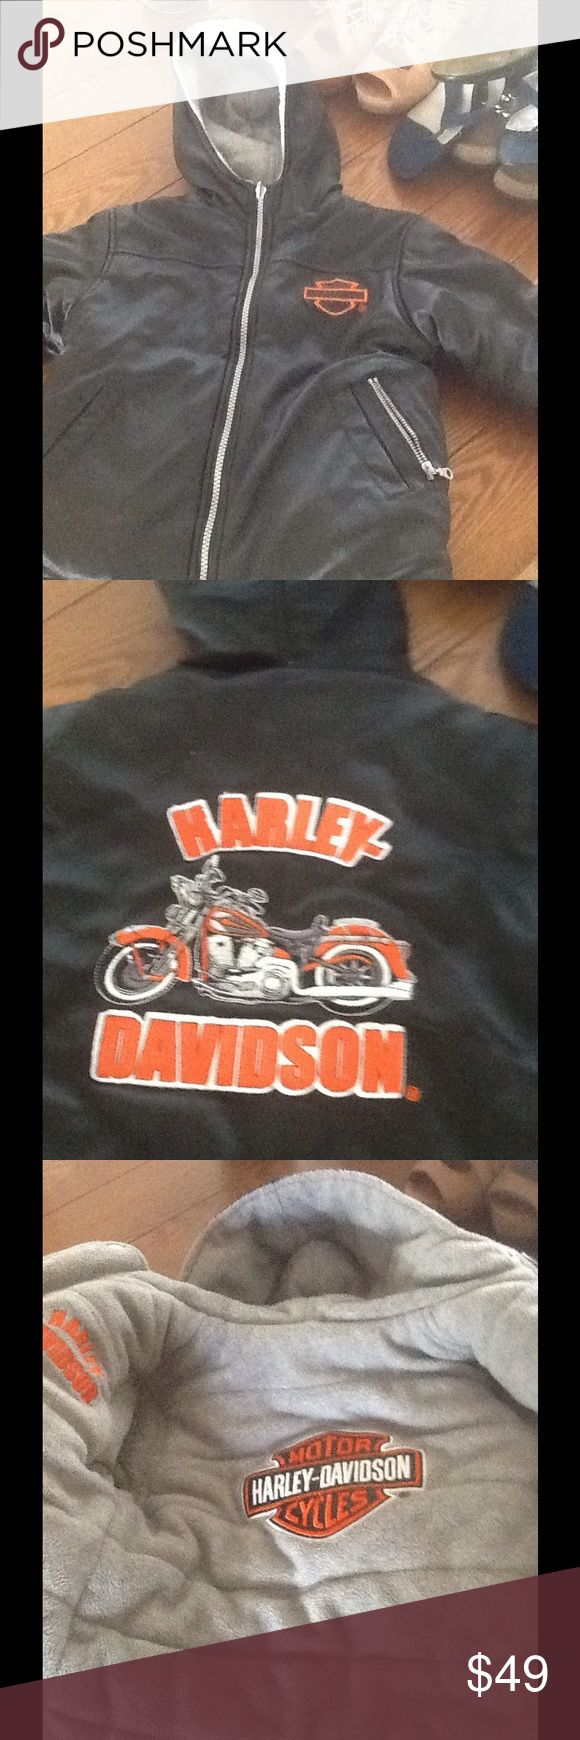 Harley Davidson reversible coat size 3 T 3t Harley Davidson reversible black water resistant coat on one side with grey fleece on the other. Size 3t truly an adorable coat Harley-Davidson Jackets & Coats Puffers